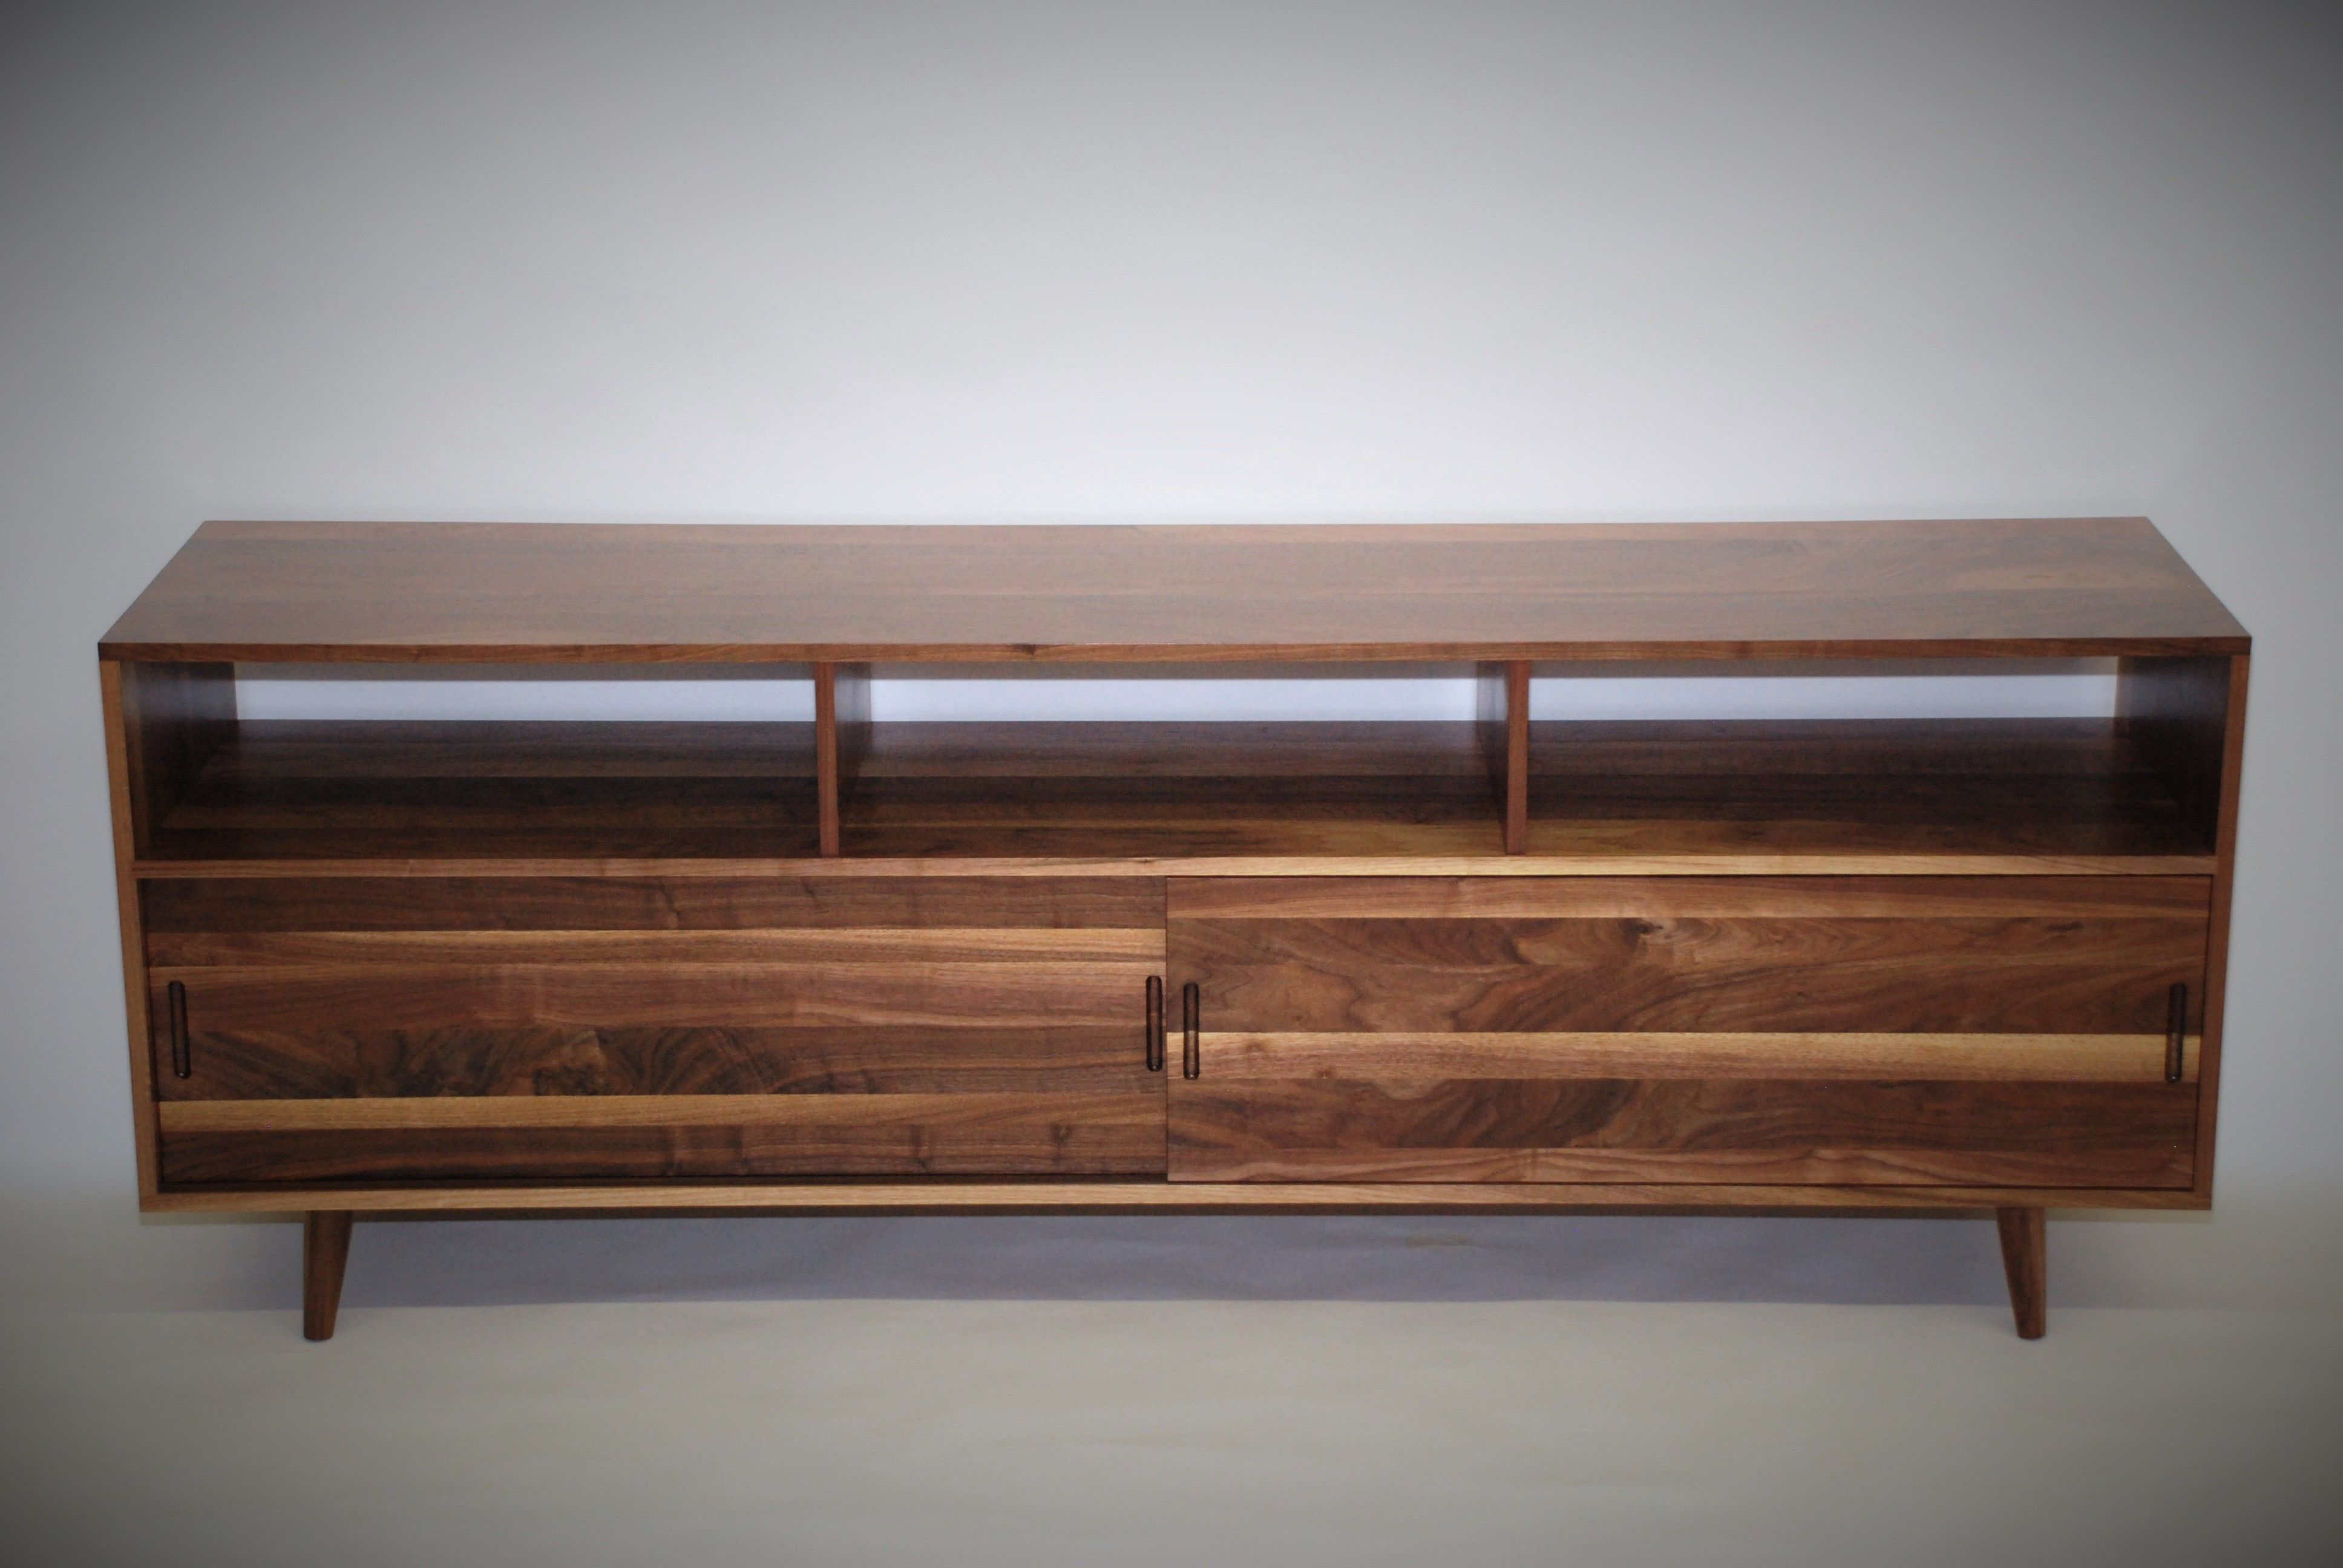 A Custom Made Mid Century Media Console To Order From Belak Woodworking Llc Custommade